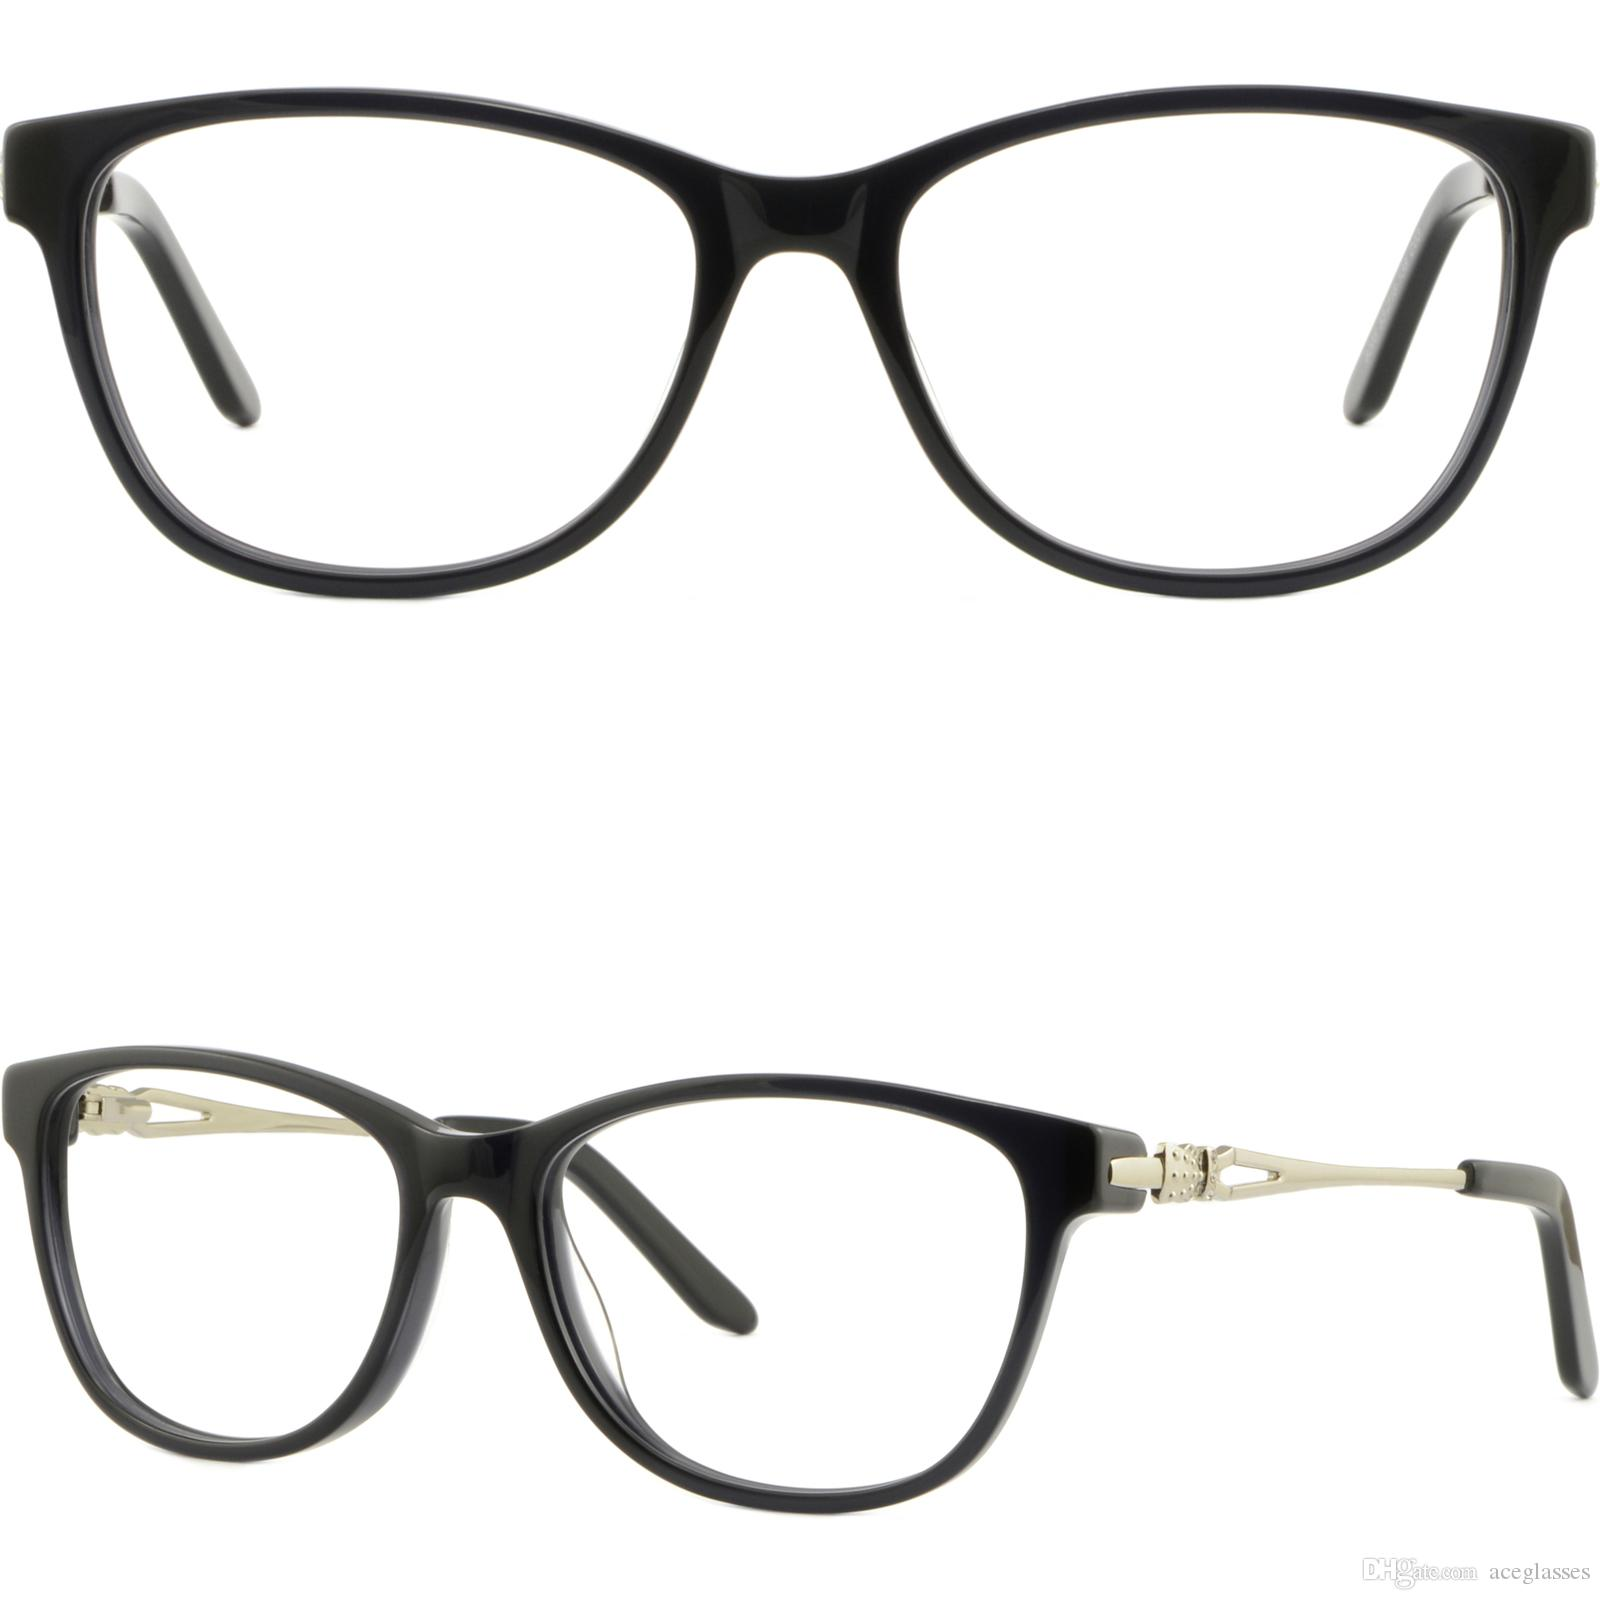 Womens Acetate Frames Spring Hinges Metal Temple Arms Lunettes RX ...